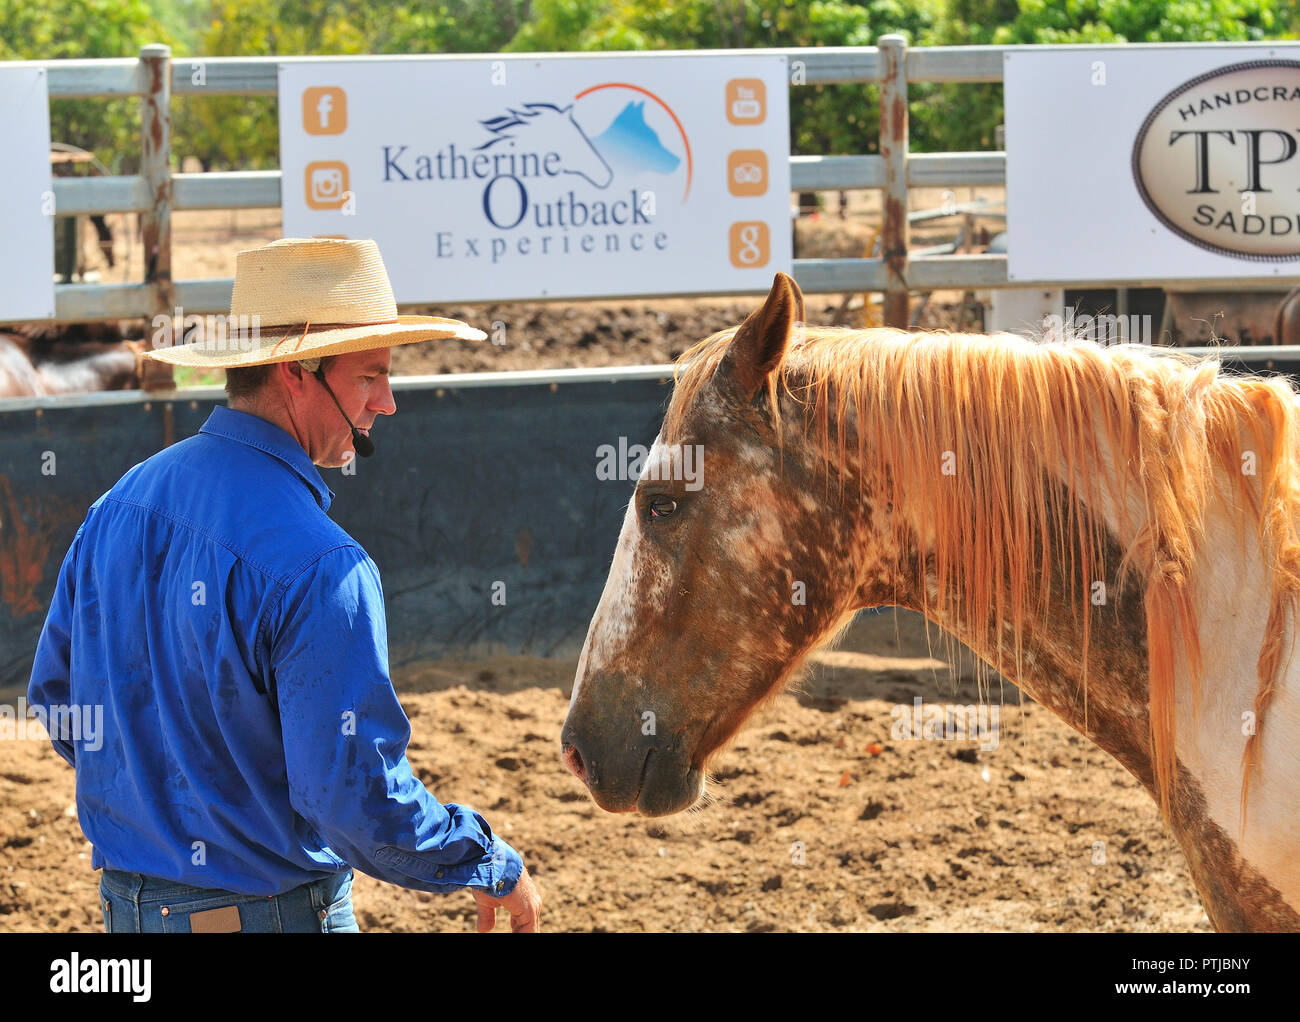 Tom Curtain the singing cowboy horse whispering  in his Outback Experience show in Katherine, Northern Territory, Australia Stock Photo